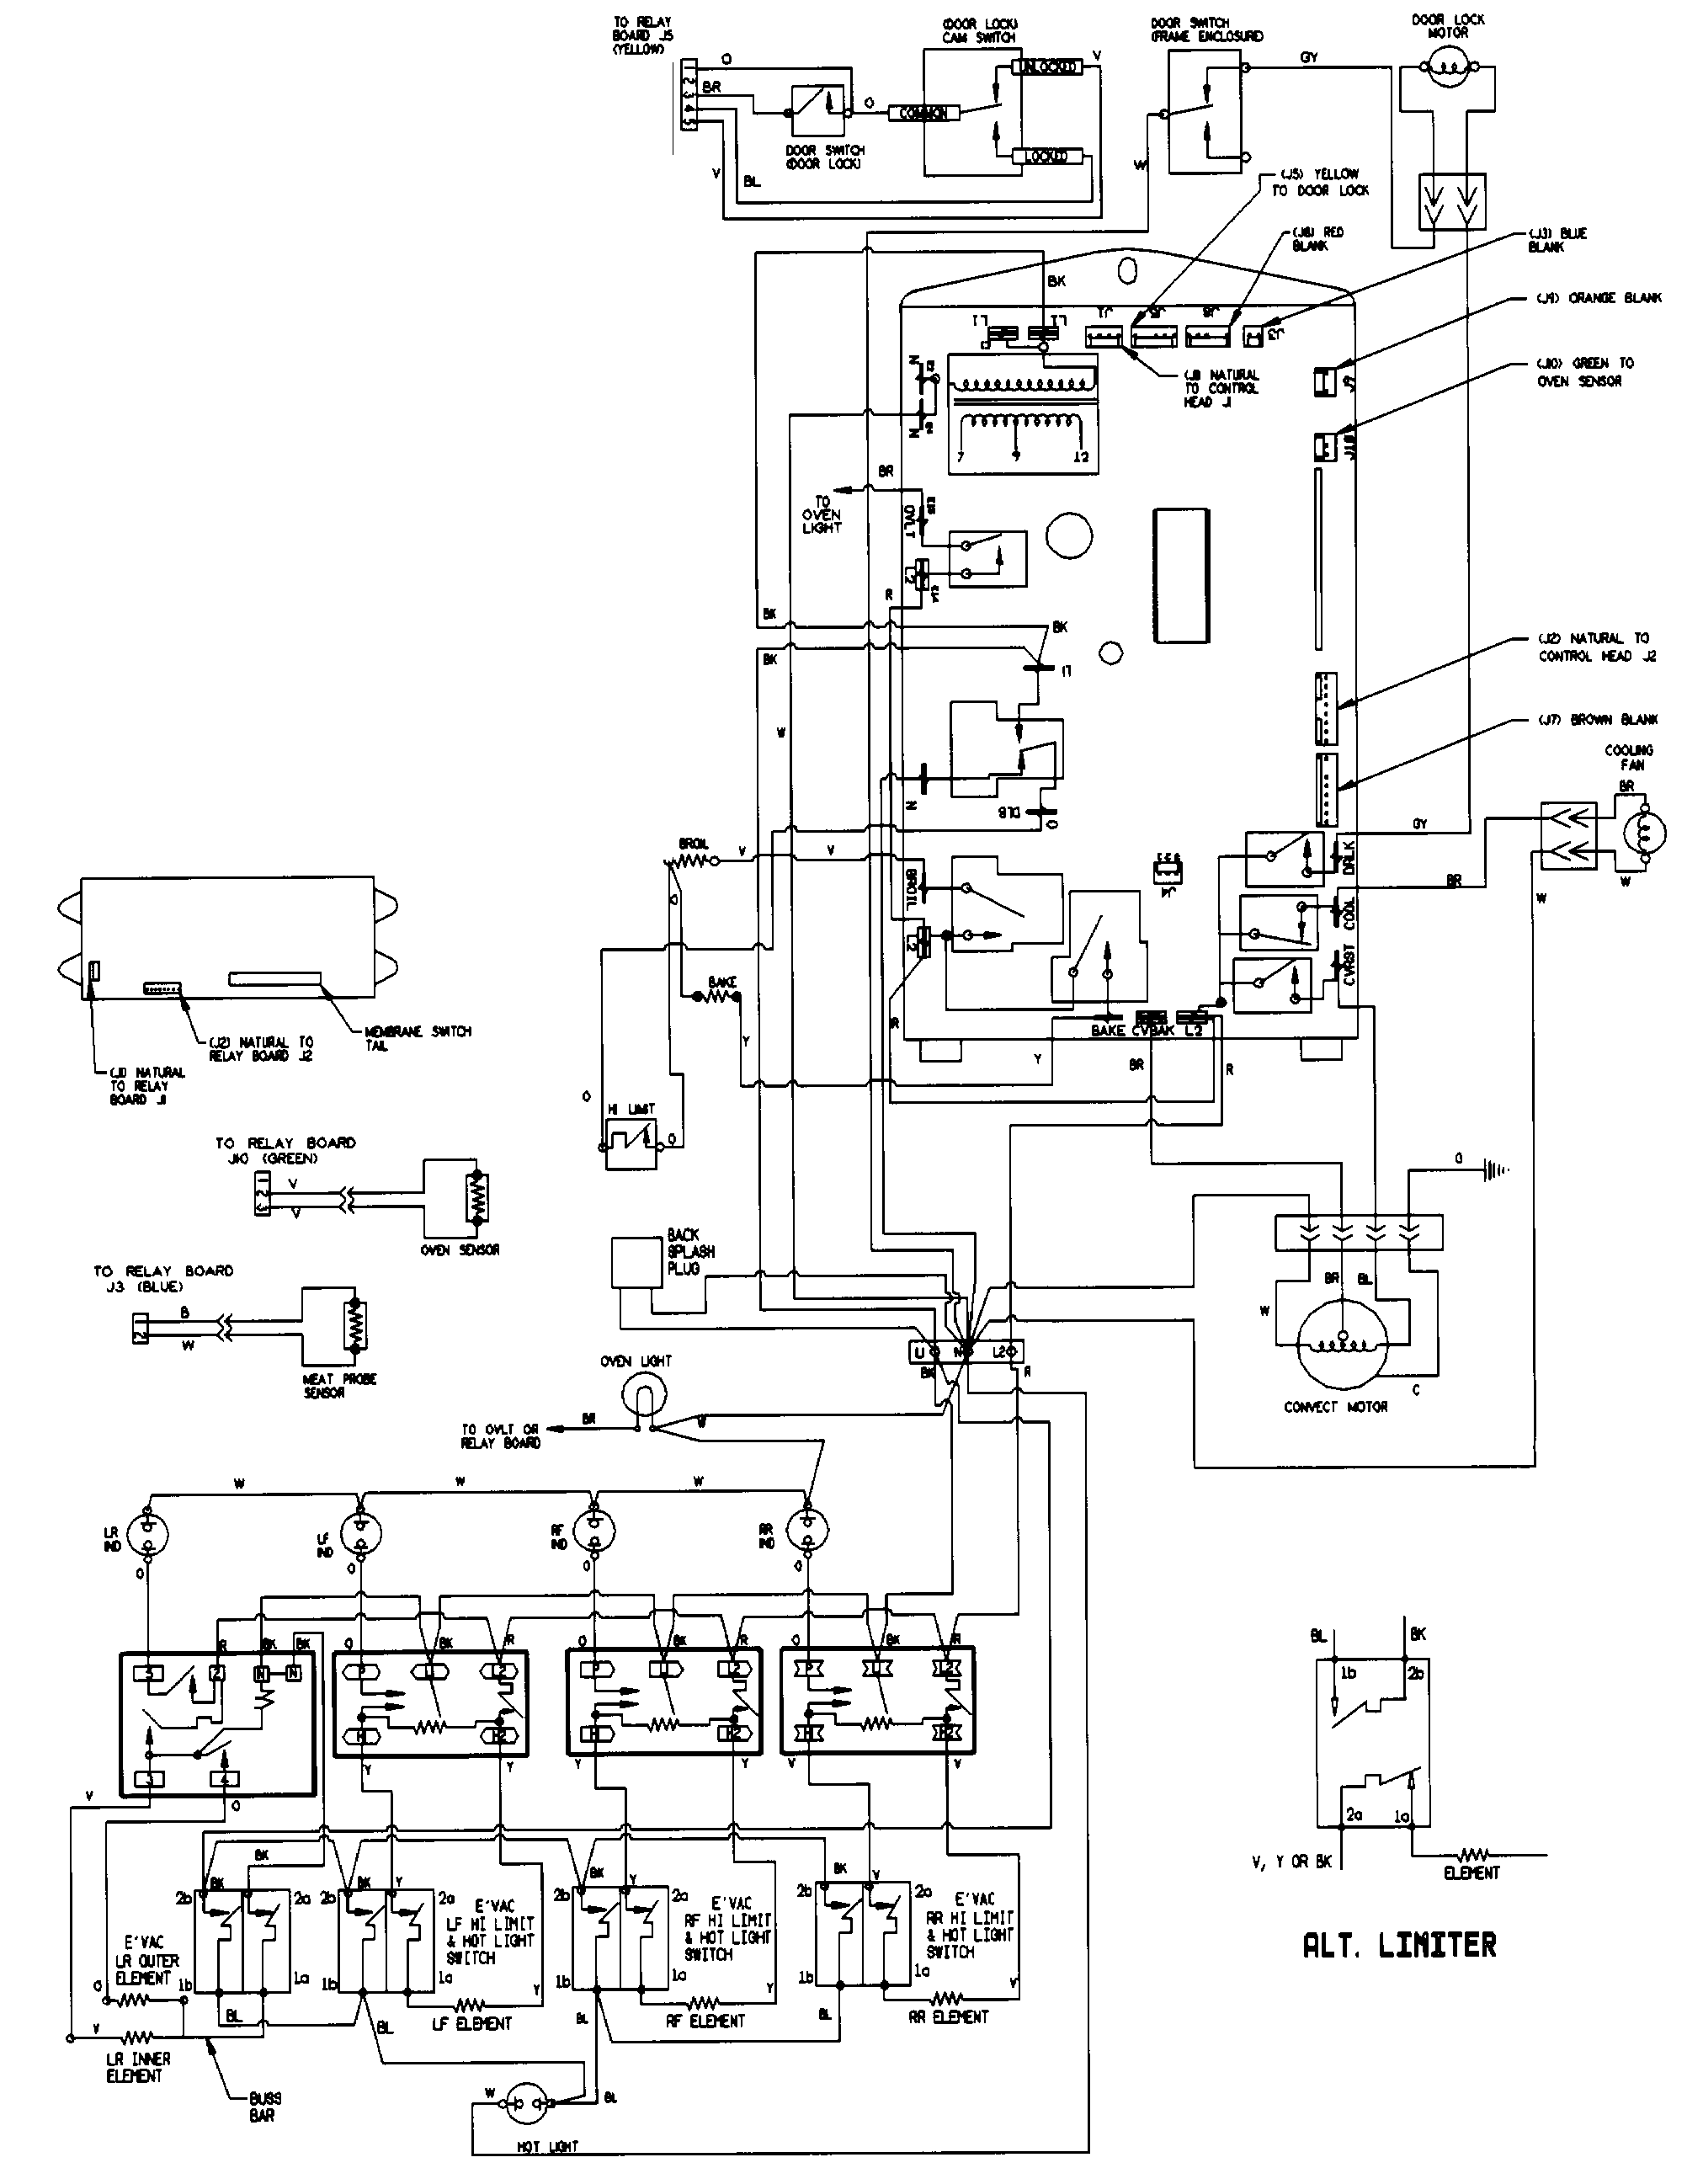 24 Wiring Diagram For Electric Stove wiring diagram